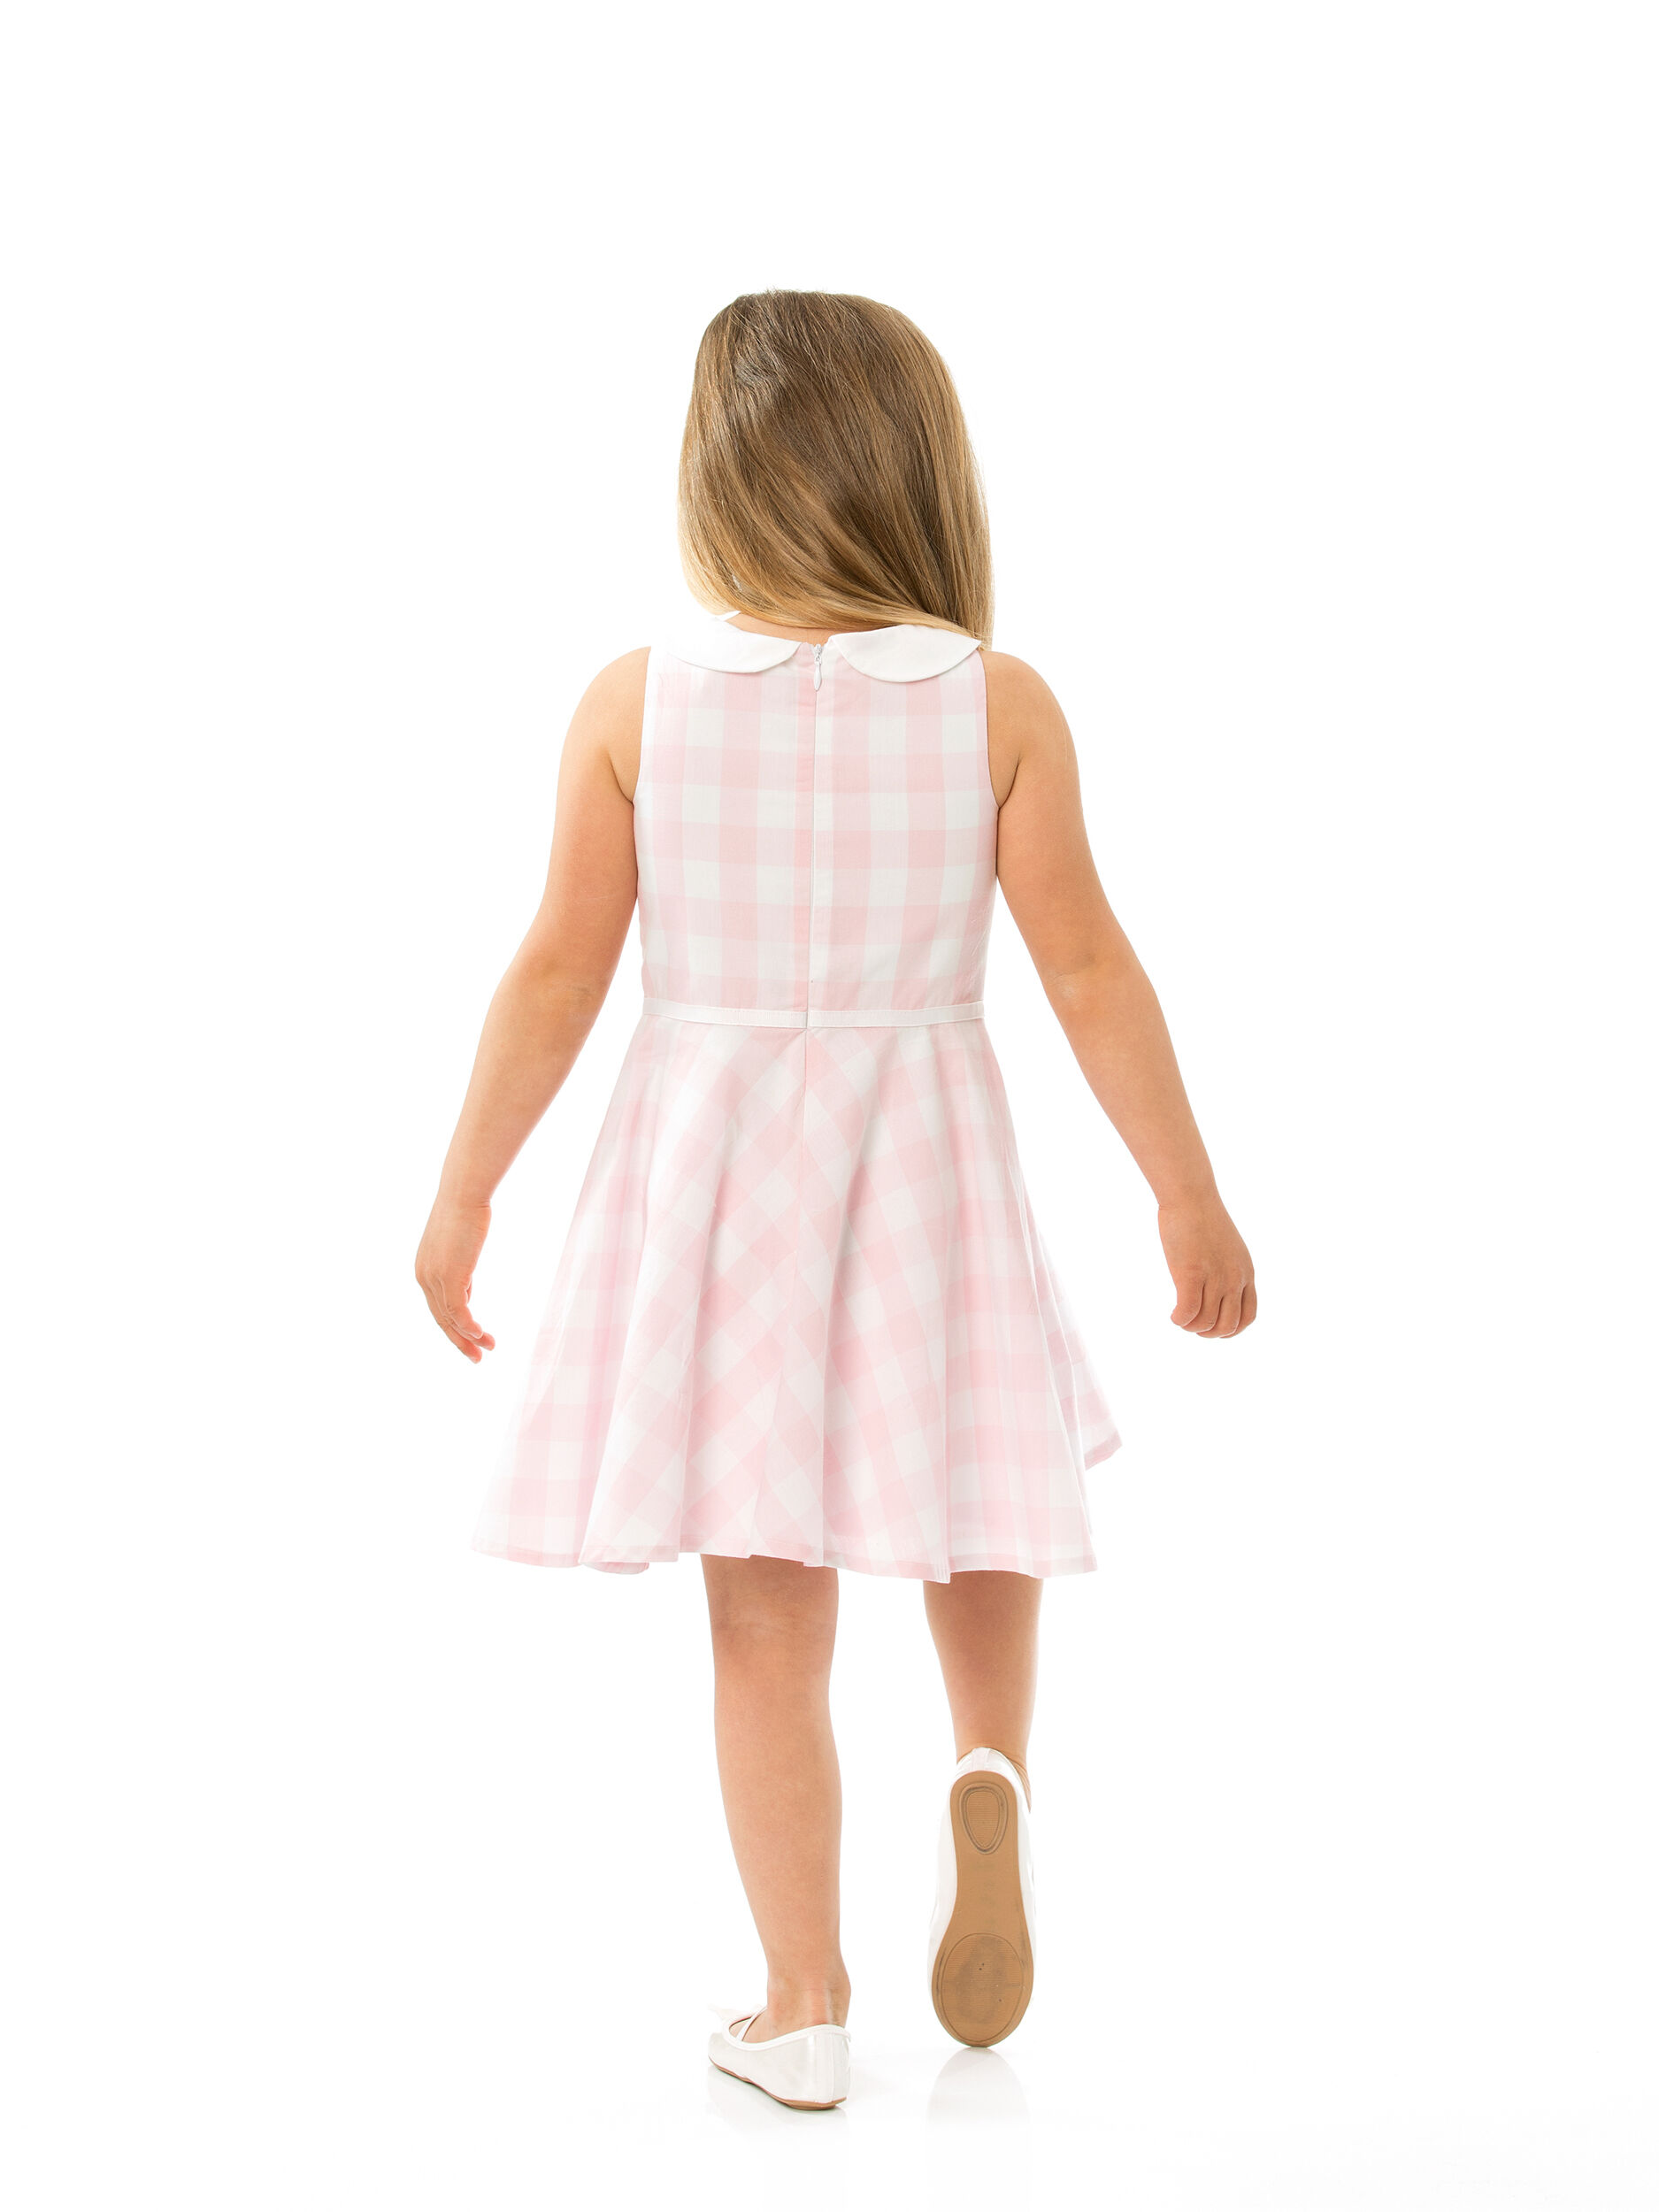 Girls 3-7 Gingham Skater Dress